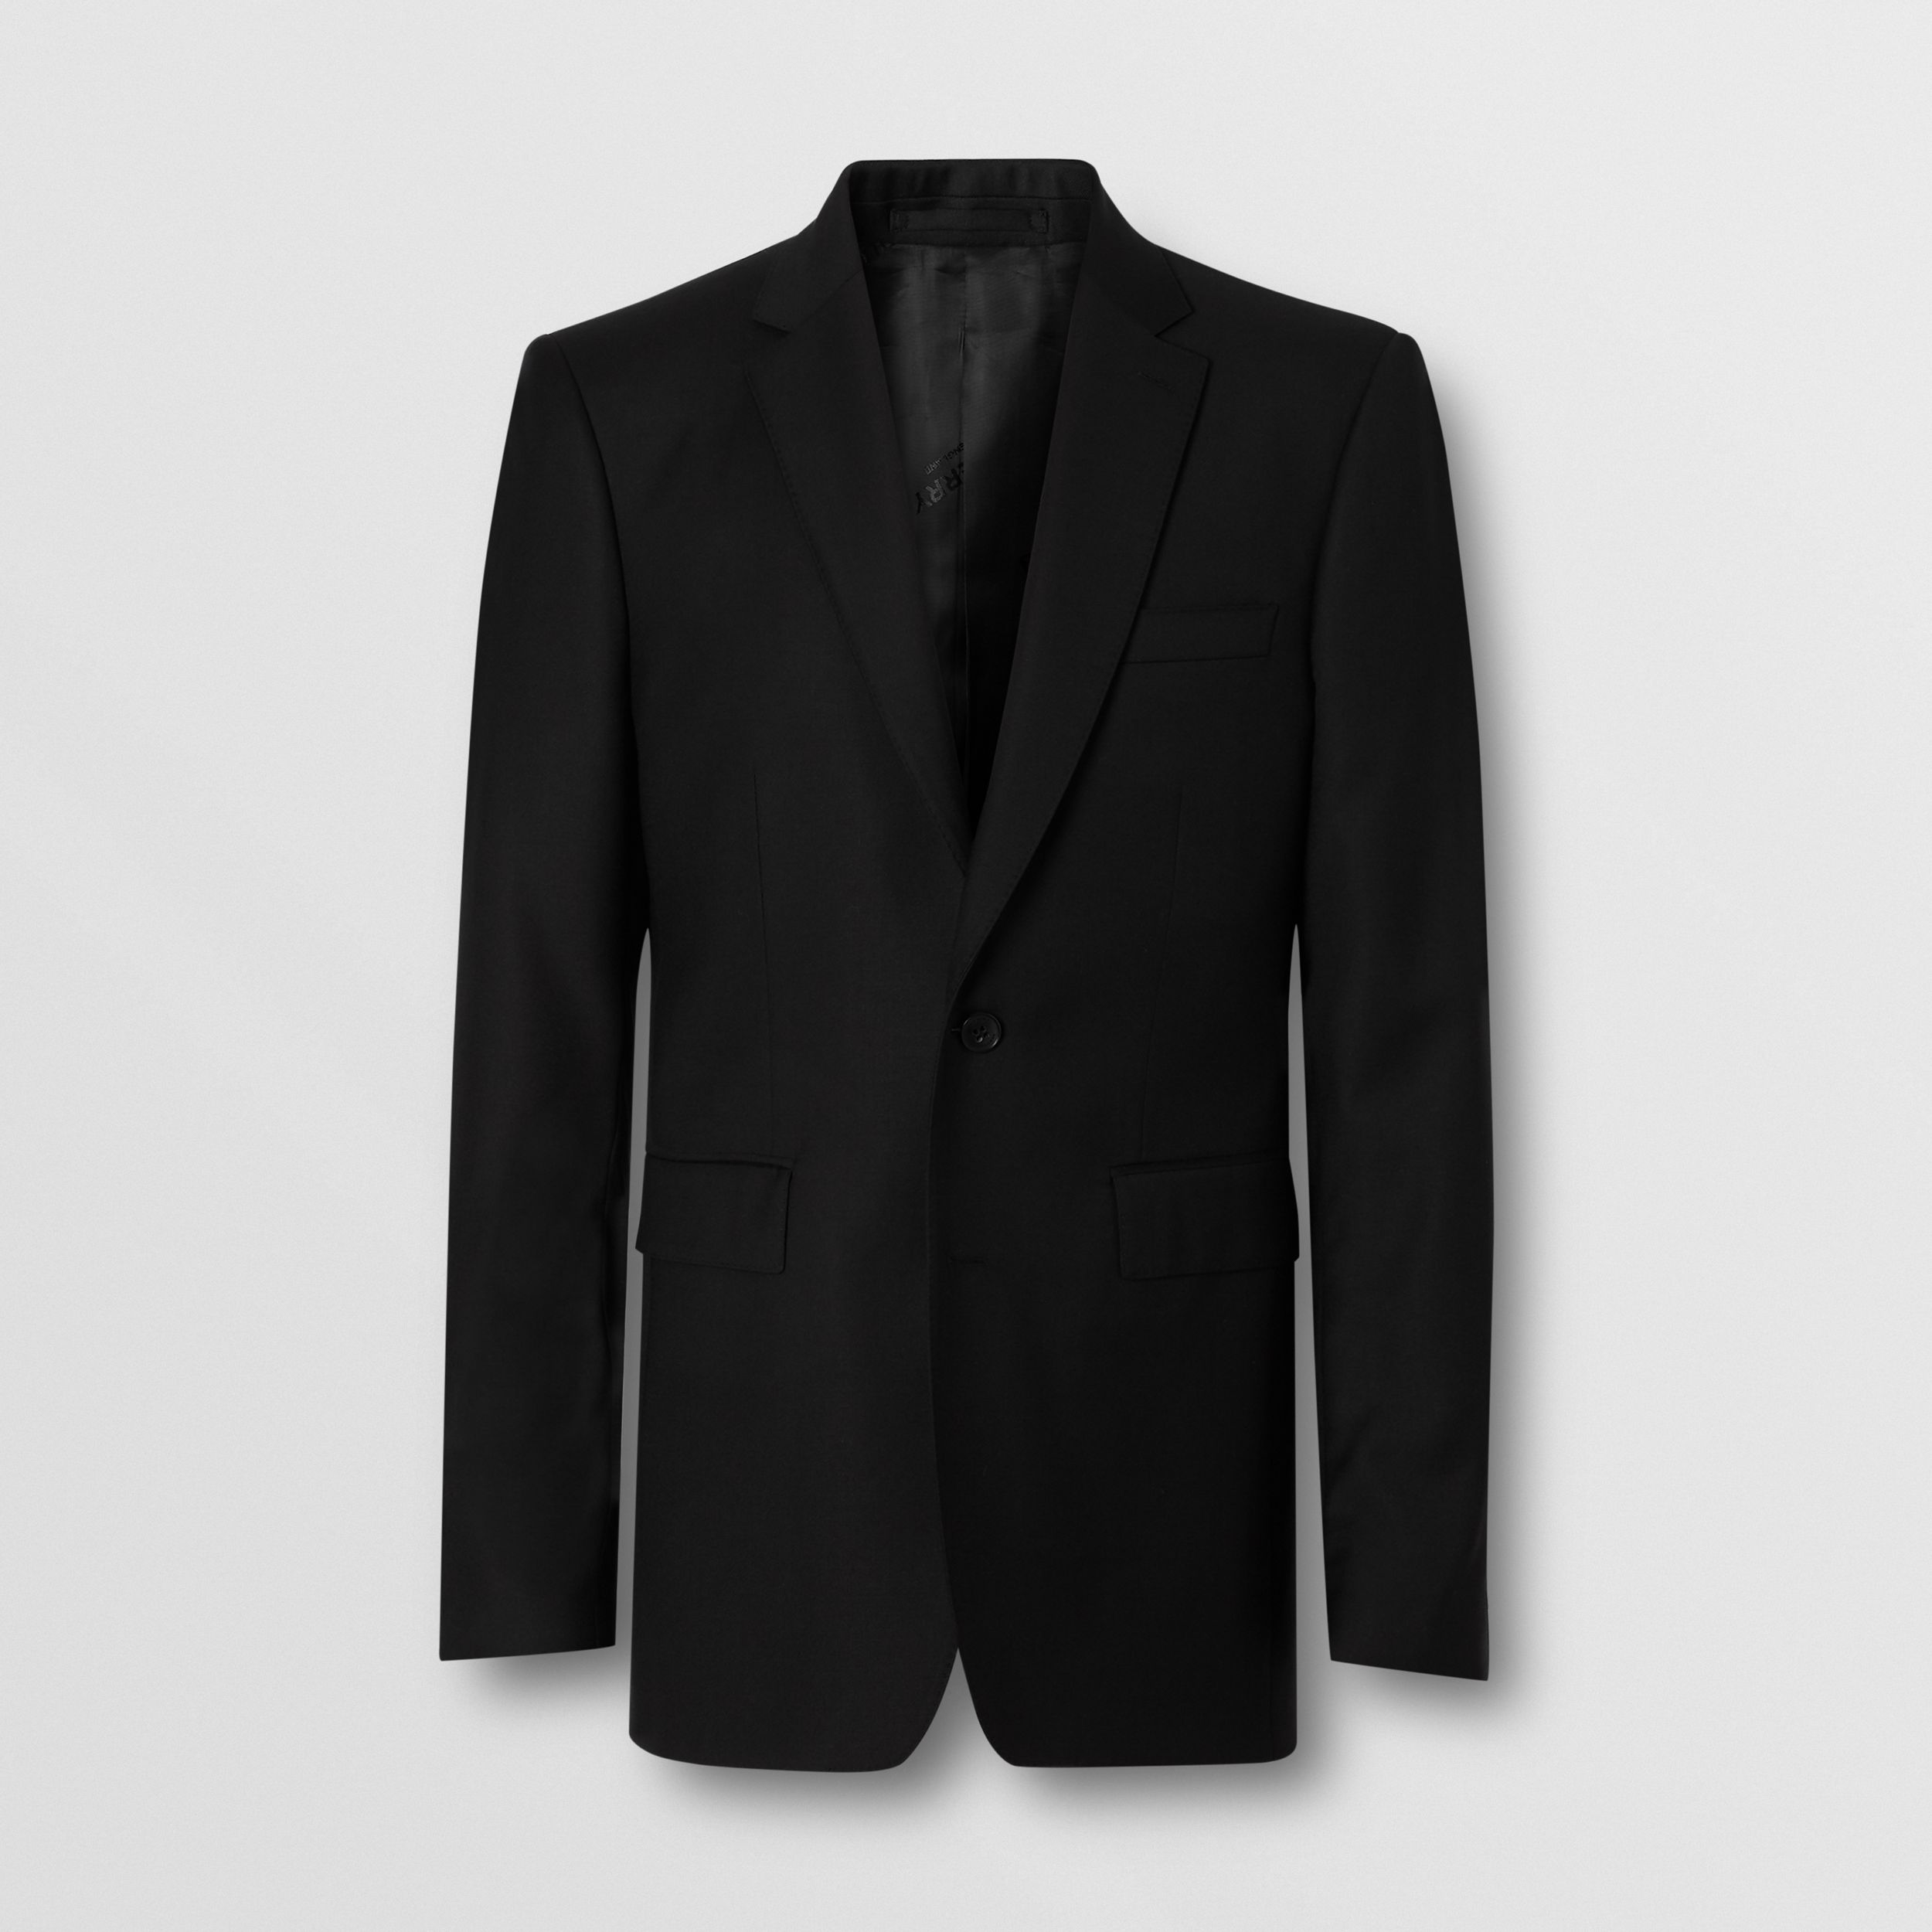 Classic Fit Wool Suit in Black - Men | Burberry - 4